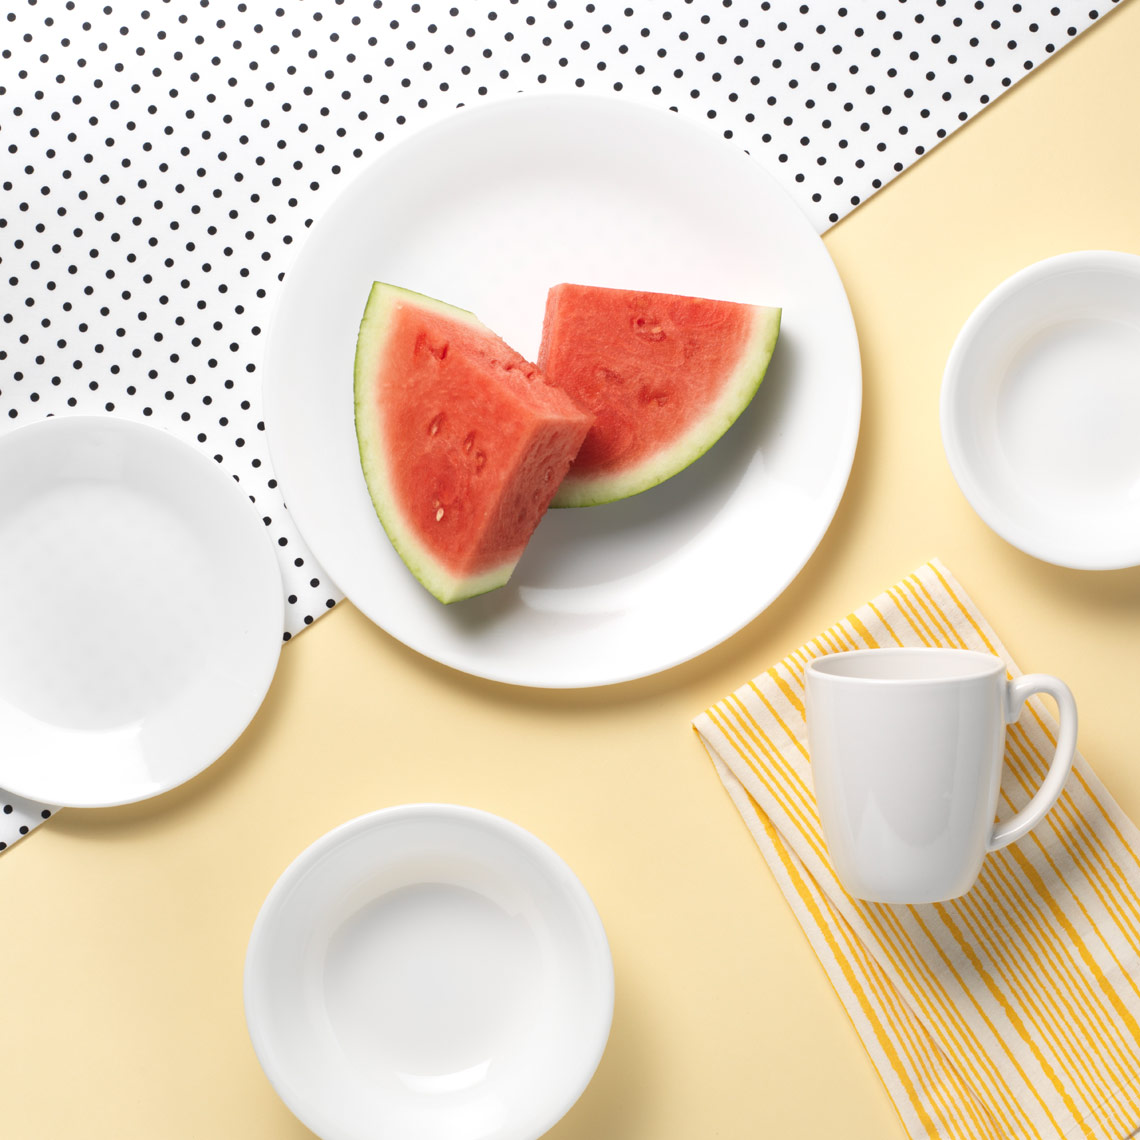 plates on a yellow black and white polka dot table with watermelon